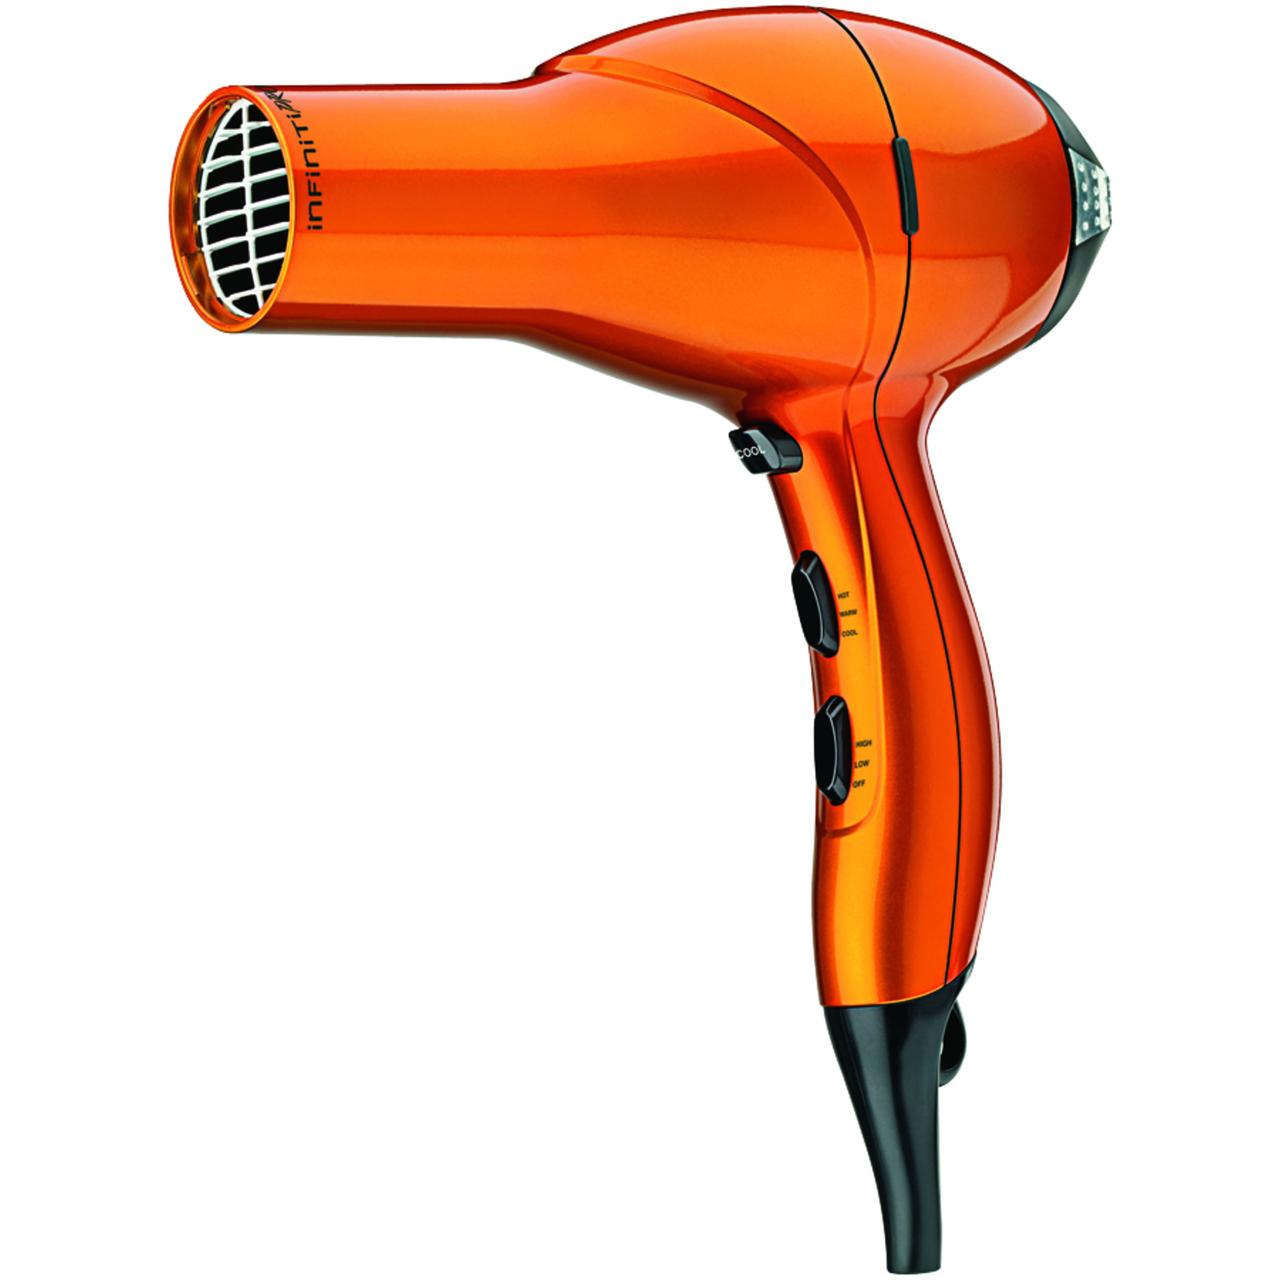 InfinitiPRO by Conair 259WMY 1875 Watt Styling Tool Blow Dryer